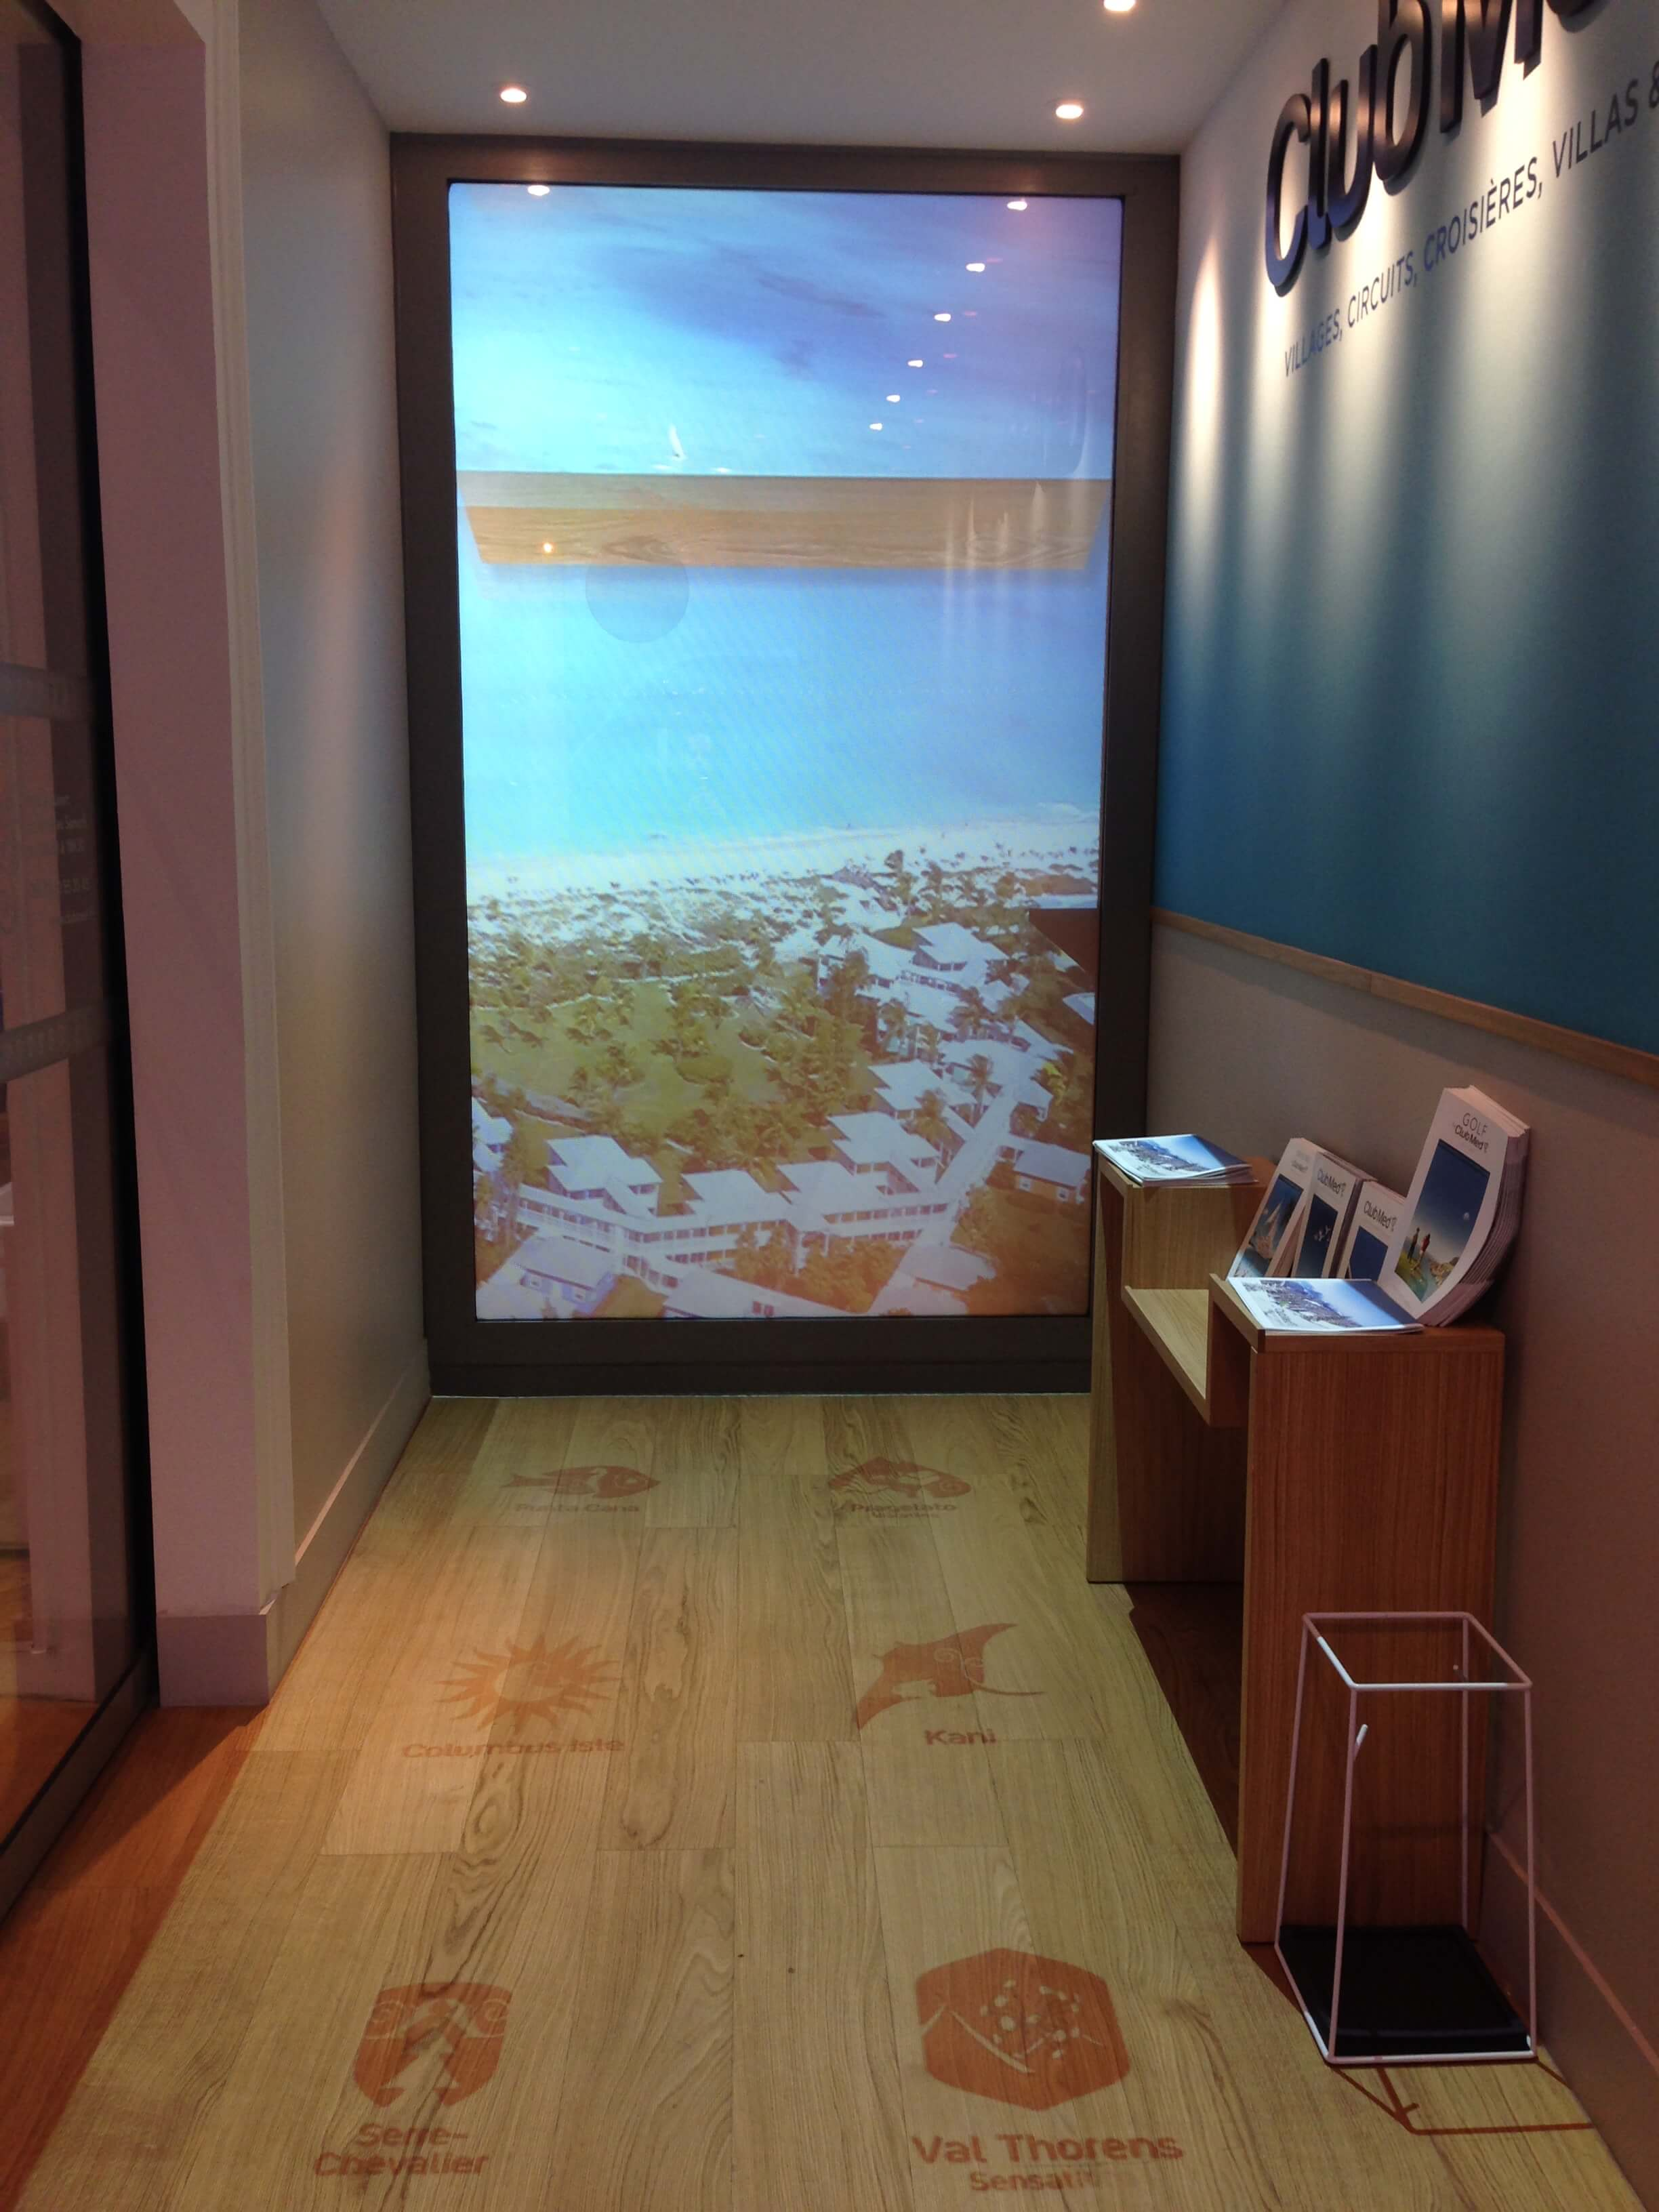 switchable-smart-glass-rear-projection-screen-museums-2.jpg